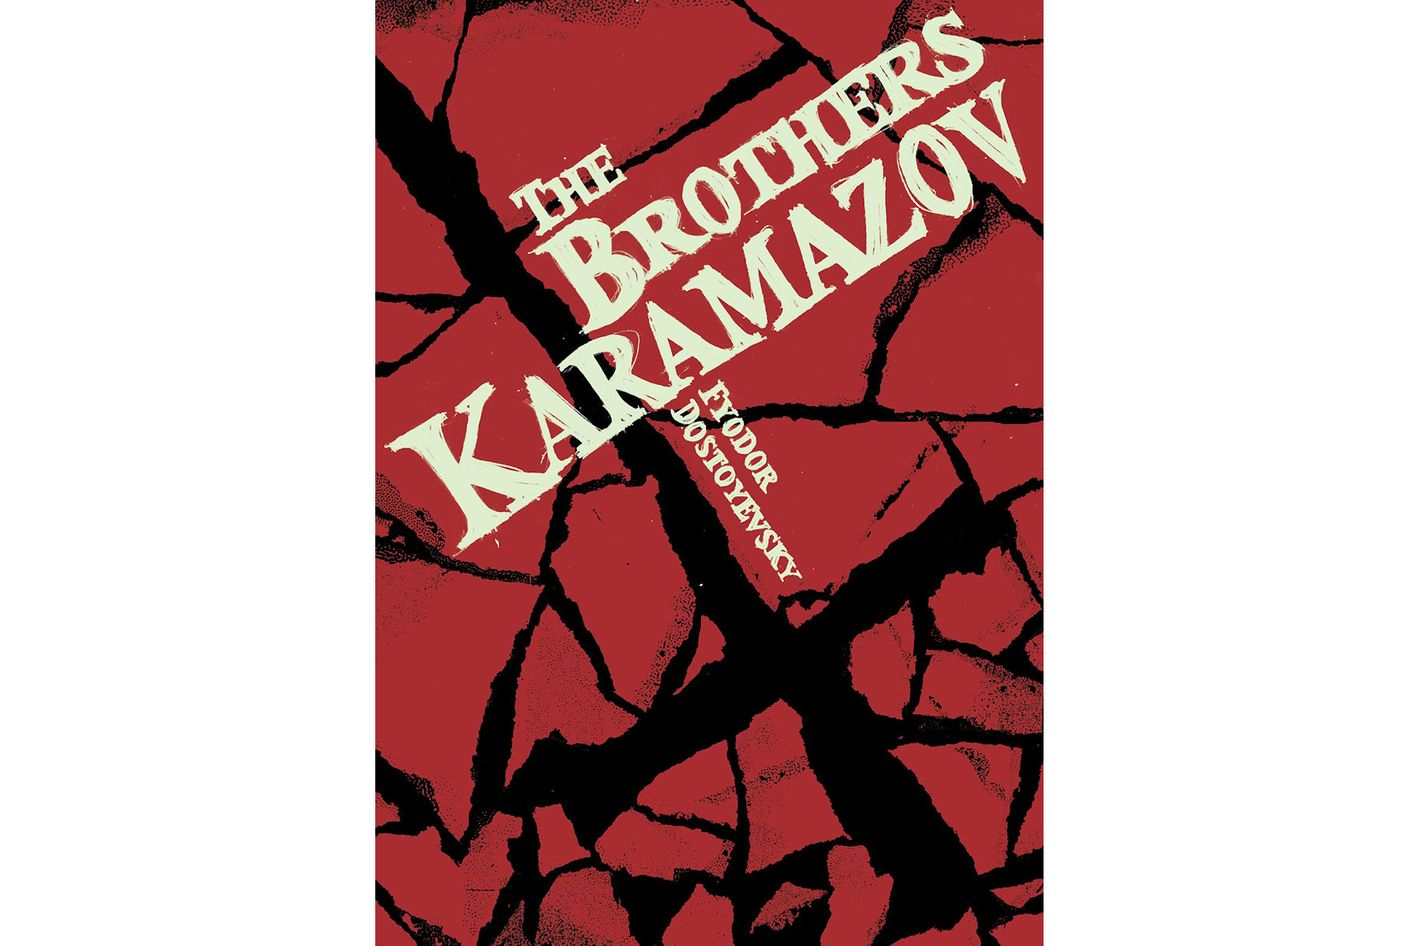 brothers karamazov thesis overman The brothers karamazov, a long and complex novel (see the themes in this classicnote), engages with his contemporary russian experience even while it speaks beyond his time and the central philosophical conflict of the brothers karamazov is the conflict between religious faith and doubt.